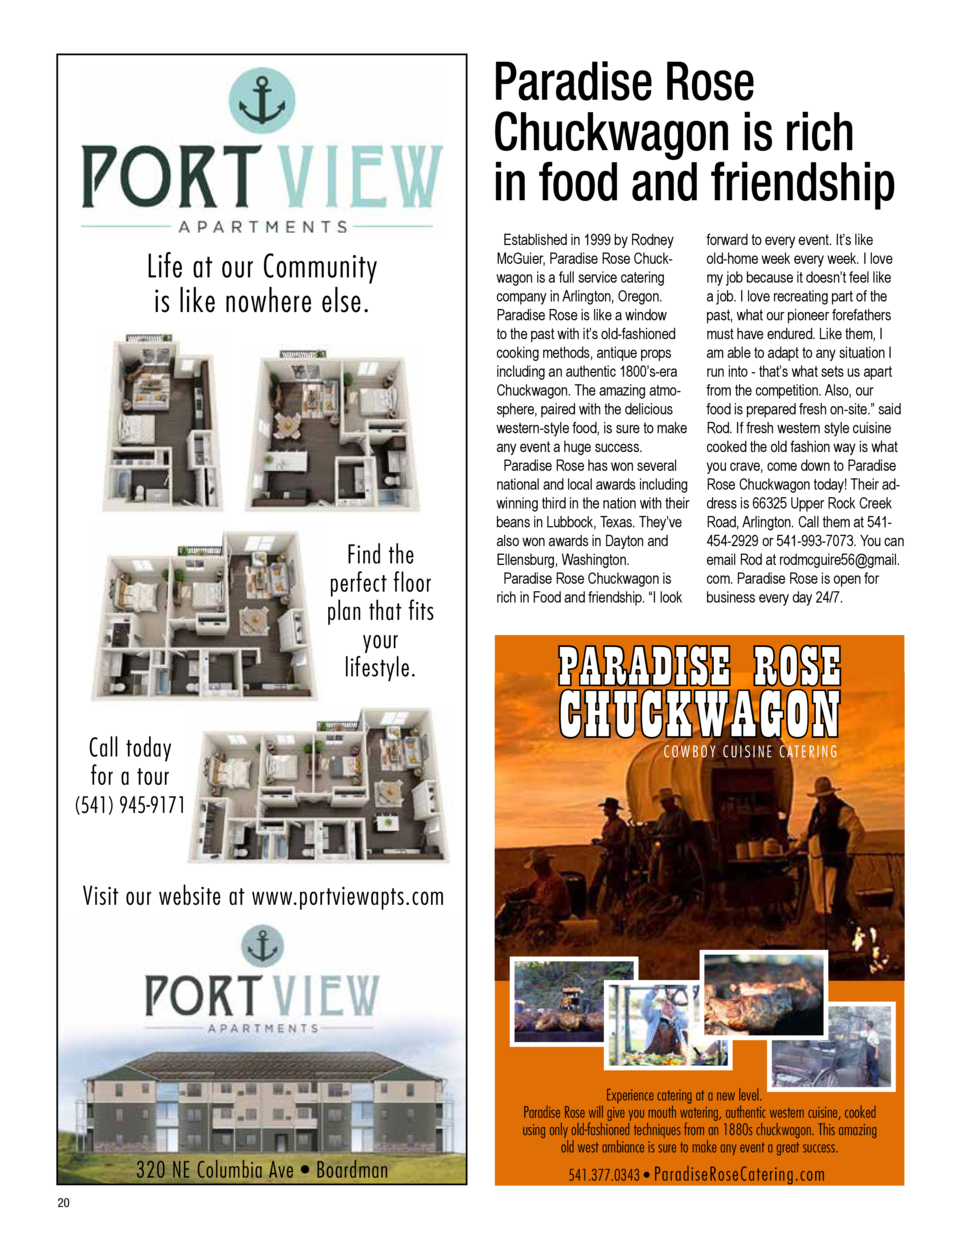 Paradise Rose Chuckwagon is rich in food and friendship Life at our Community is like nowhere else.  Established in 1999 b...